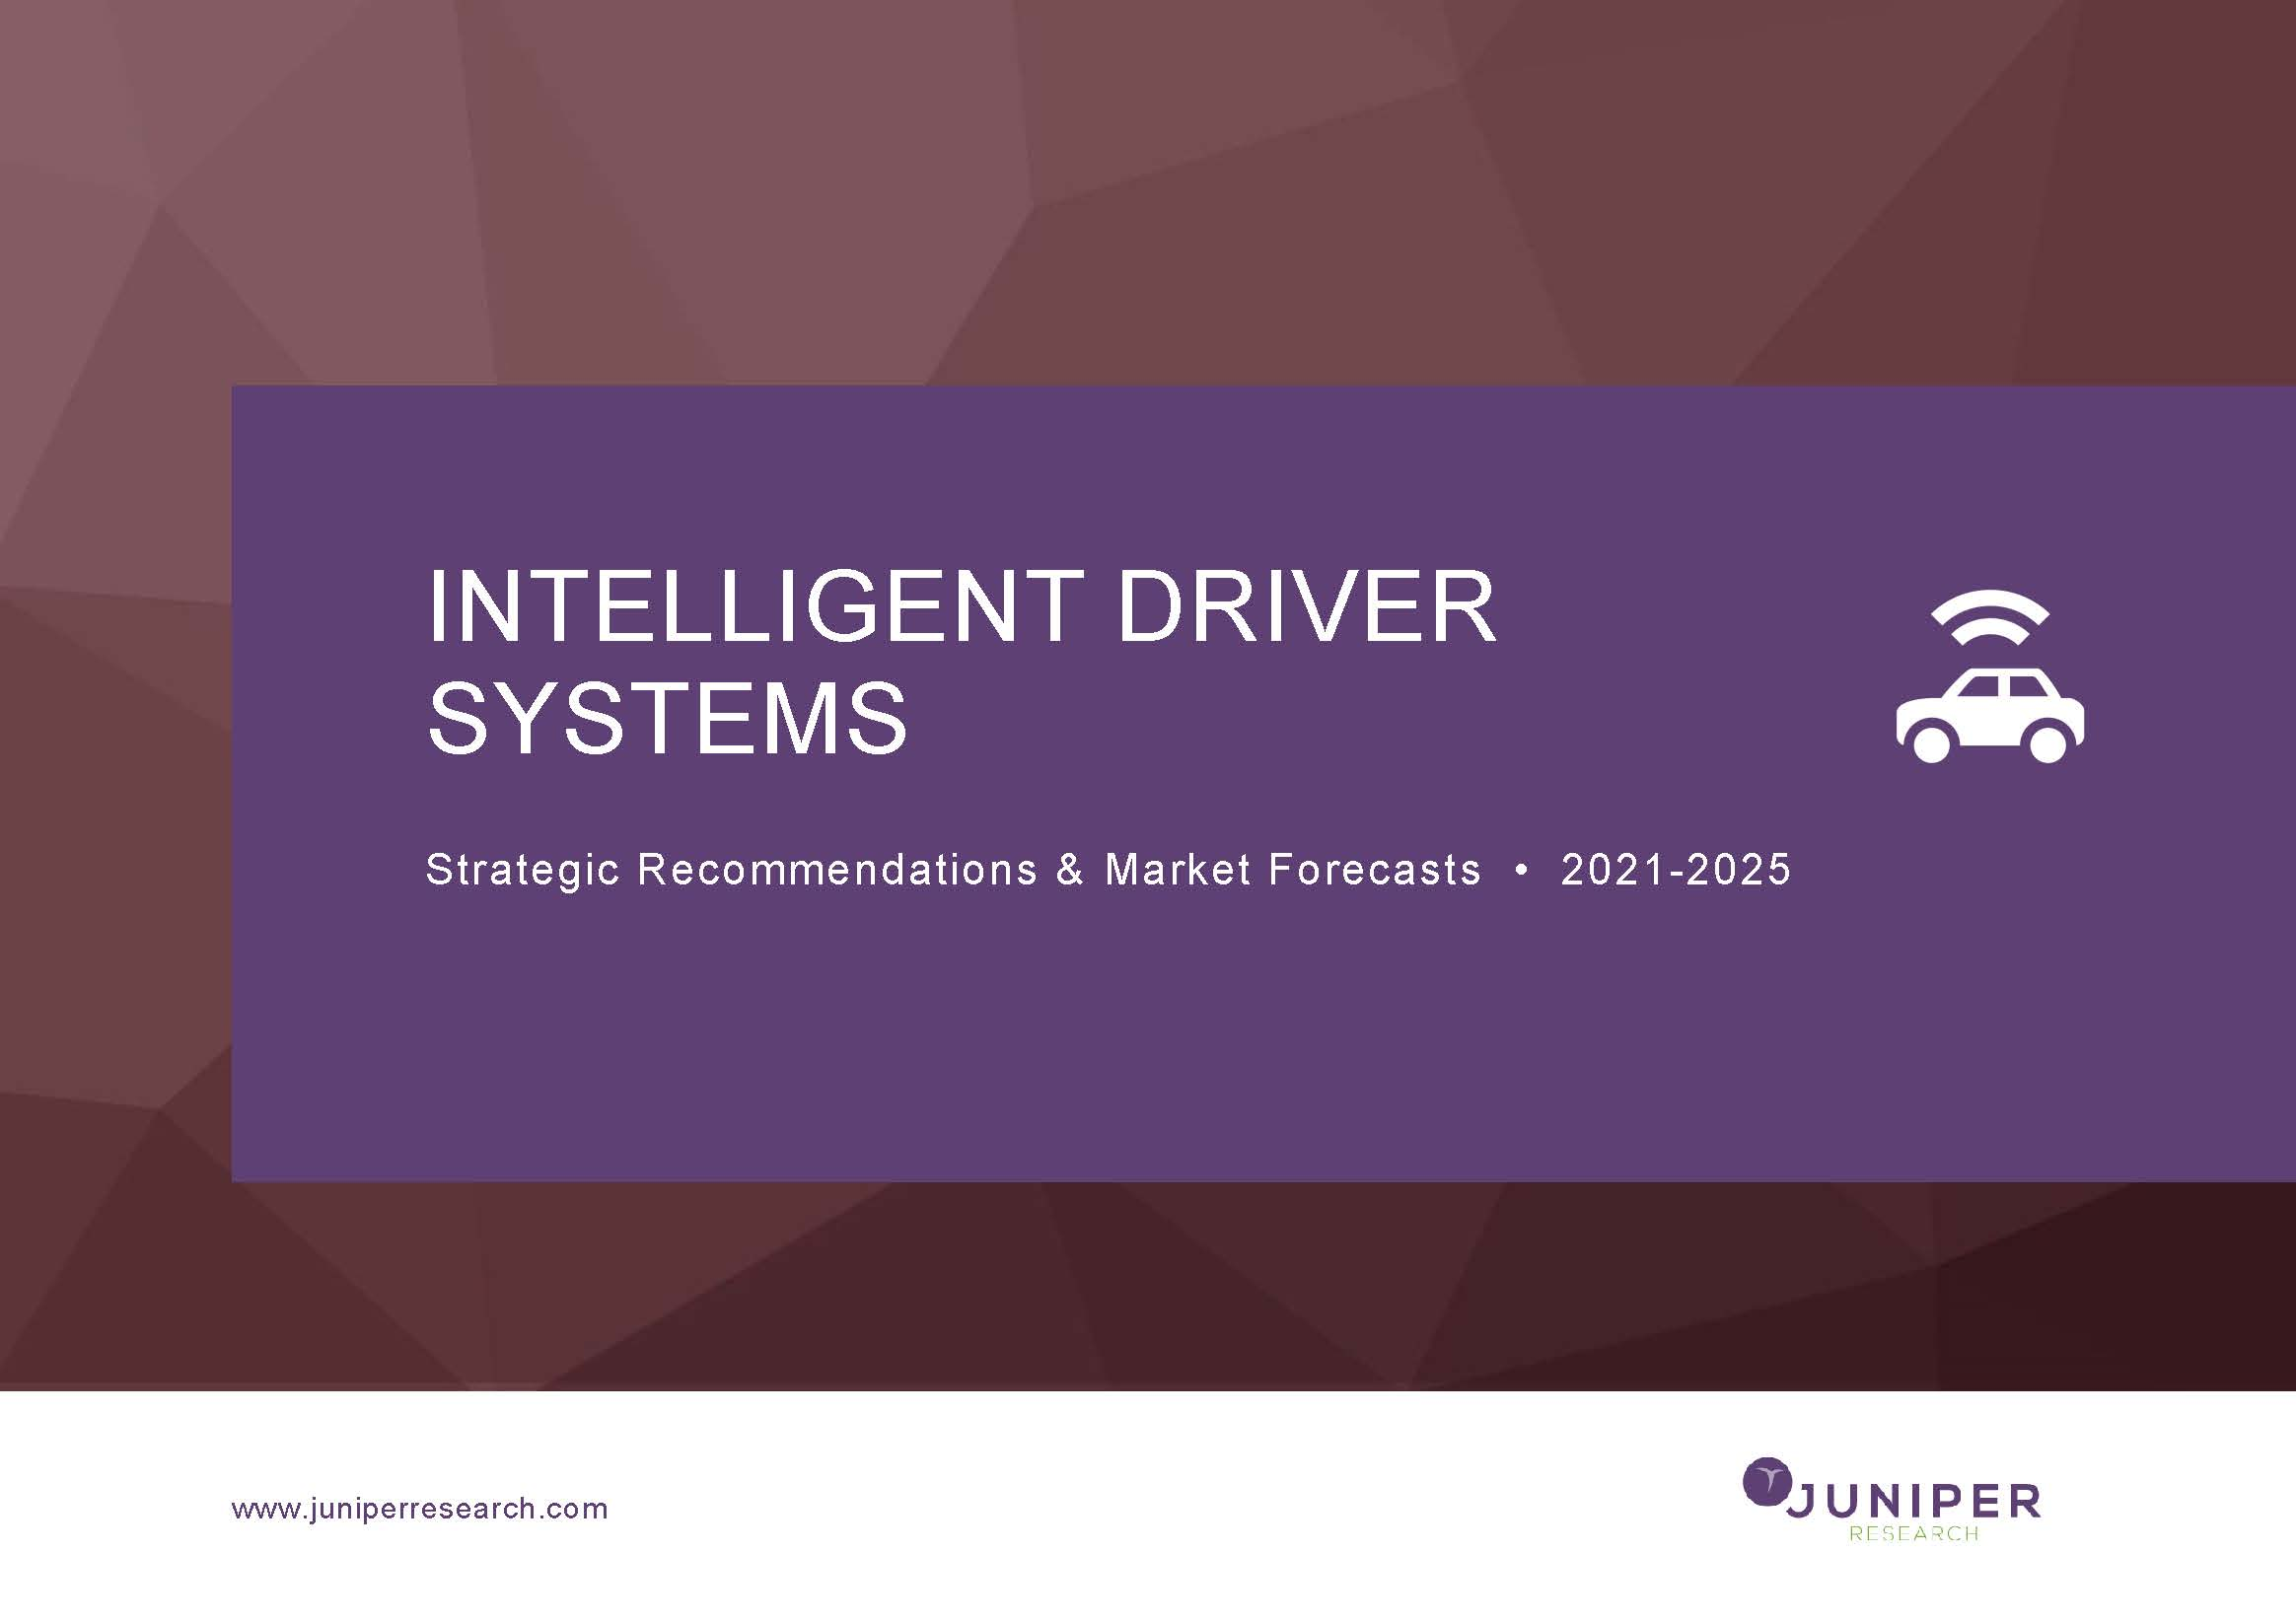 Intelligent Driver Systems